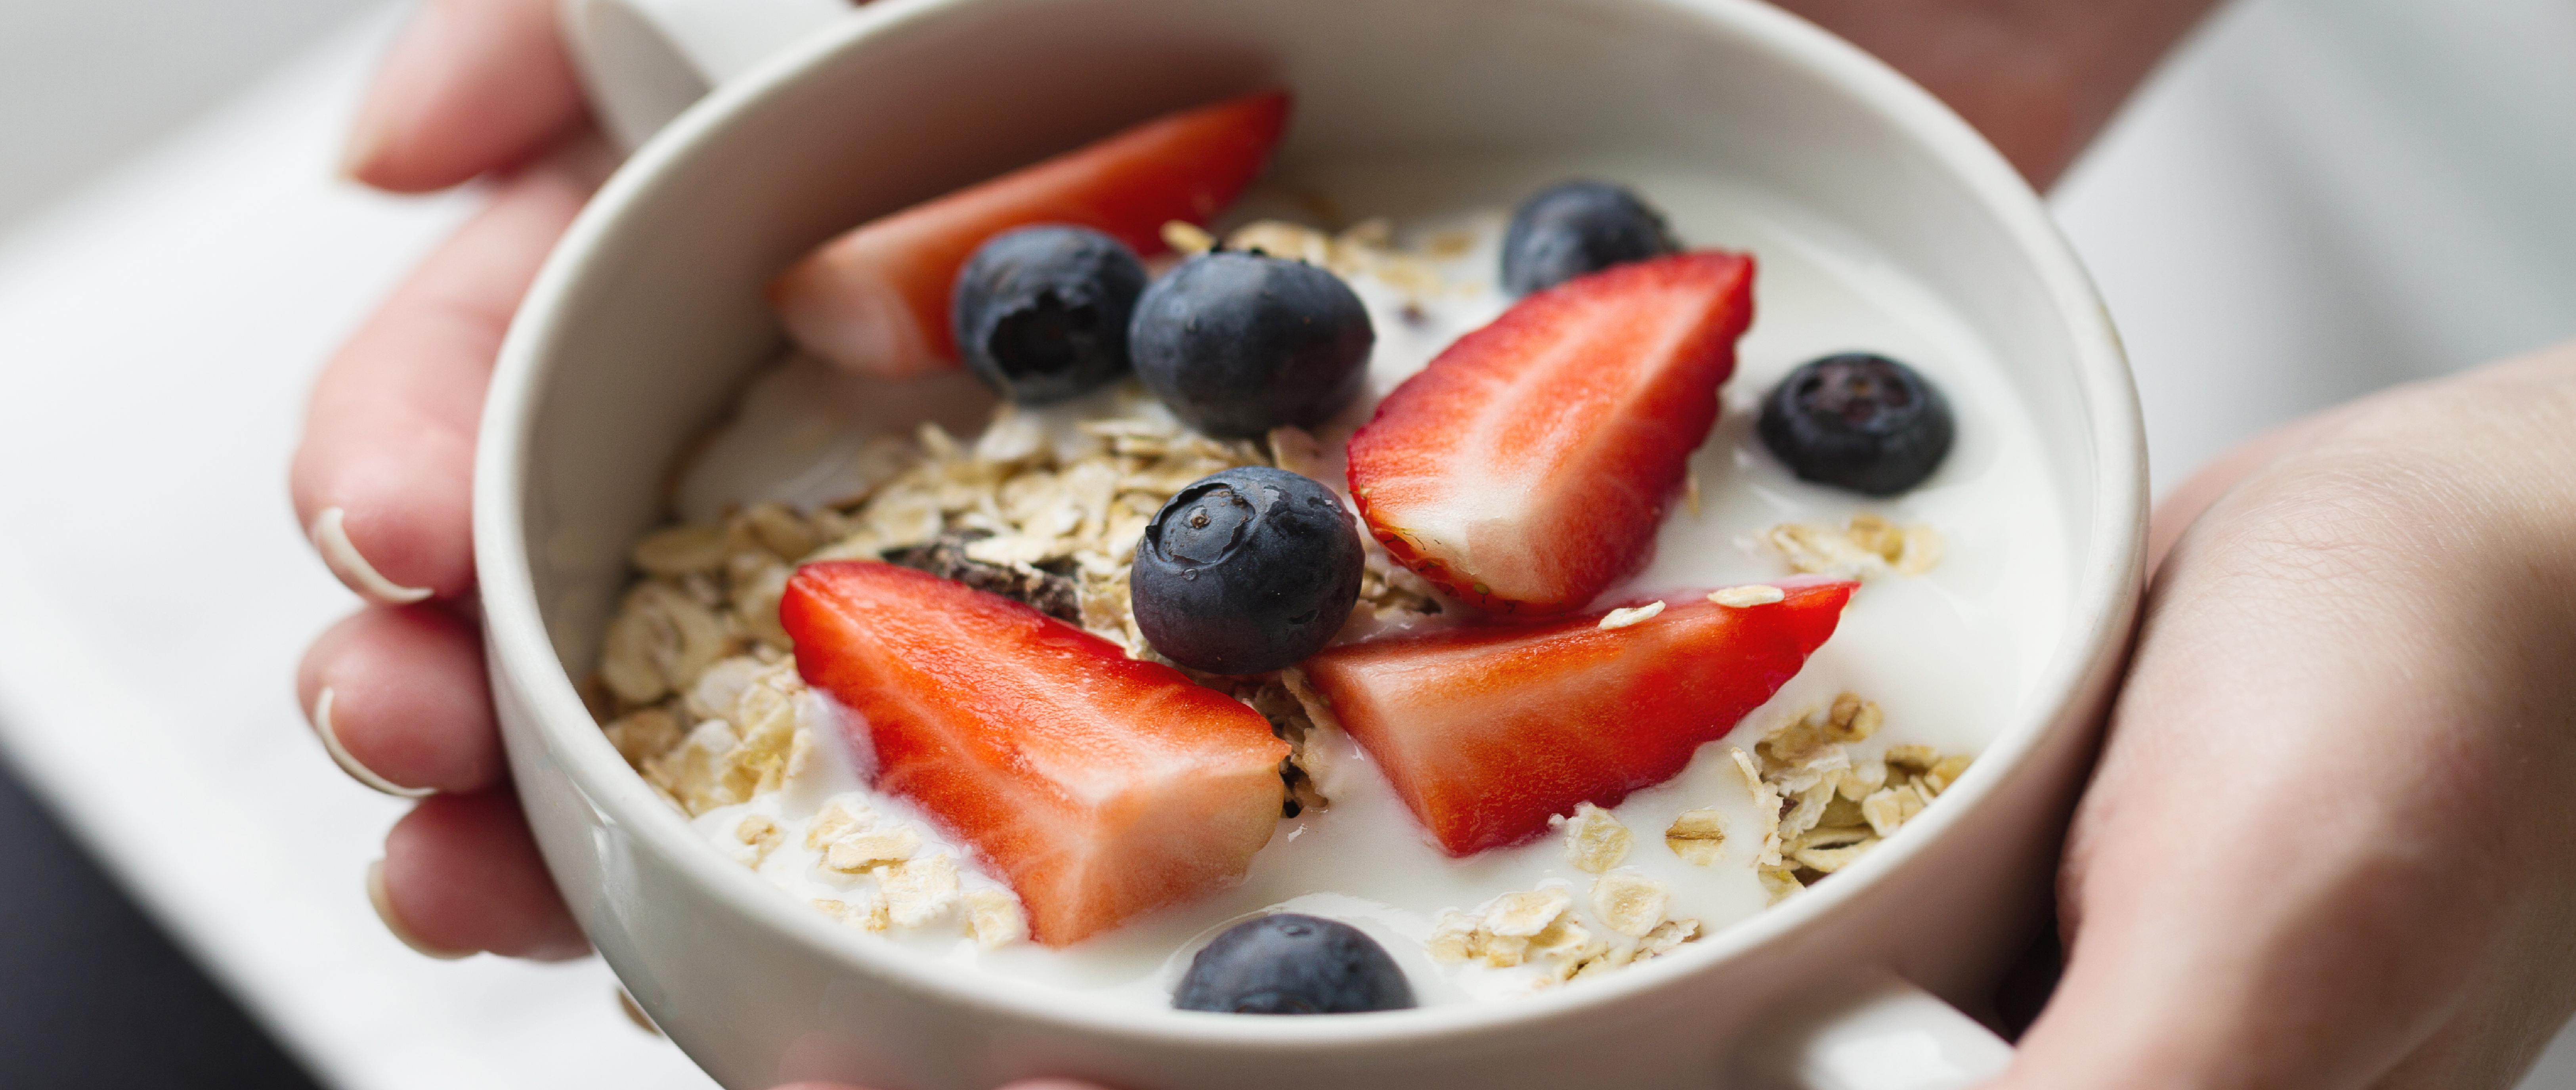 5 Healthy foods to fight depression